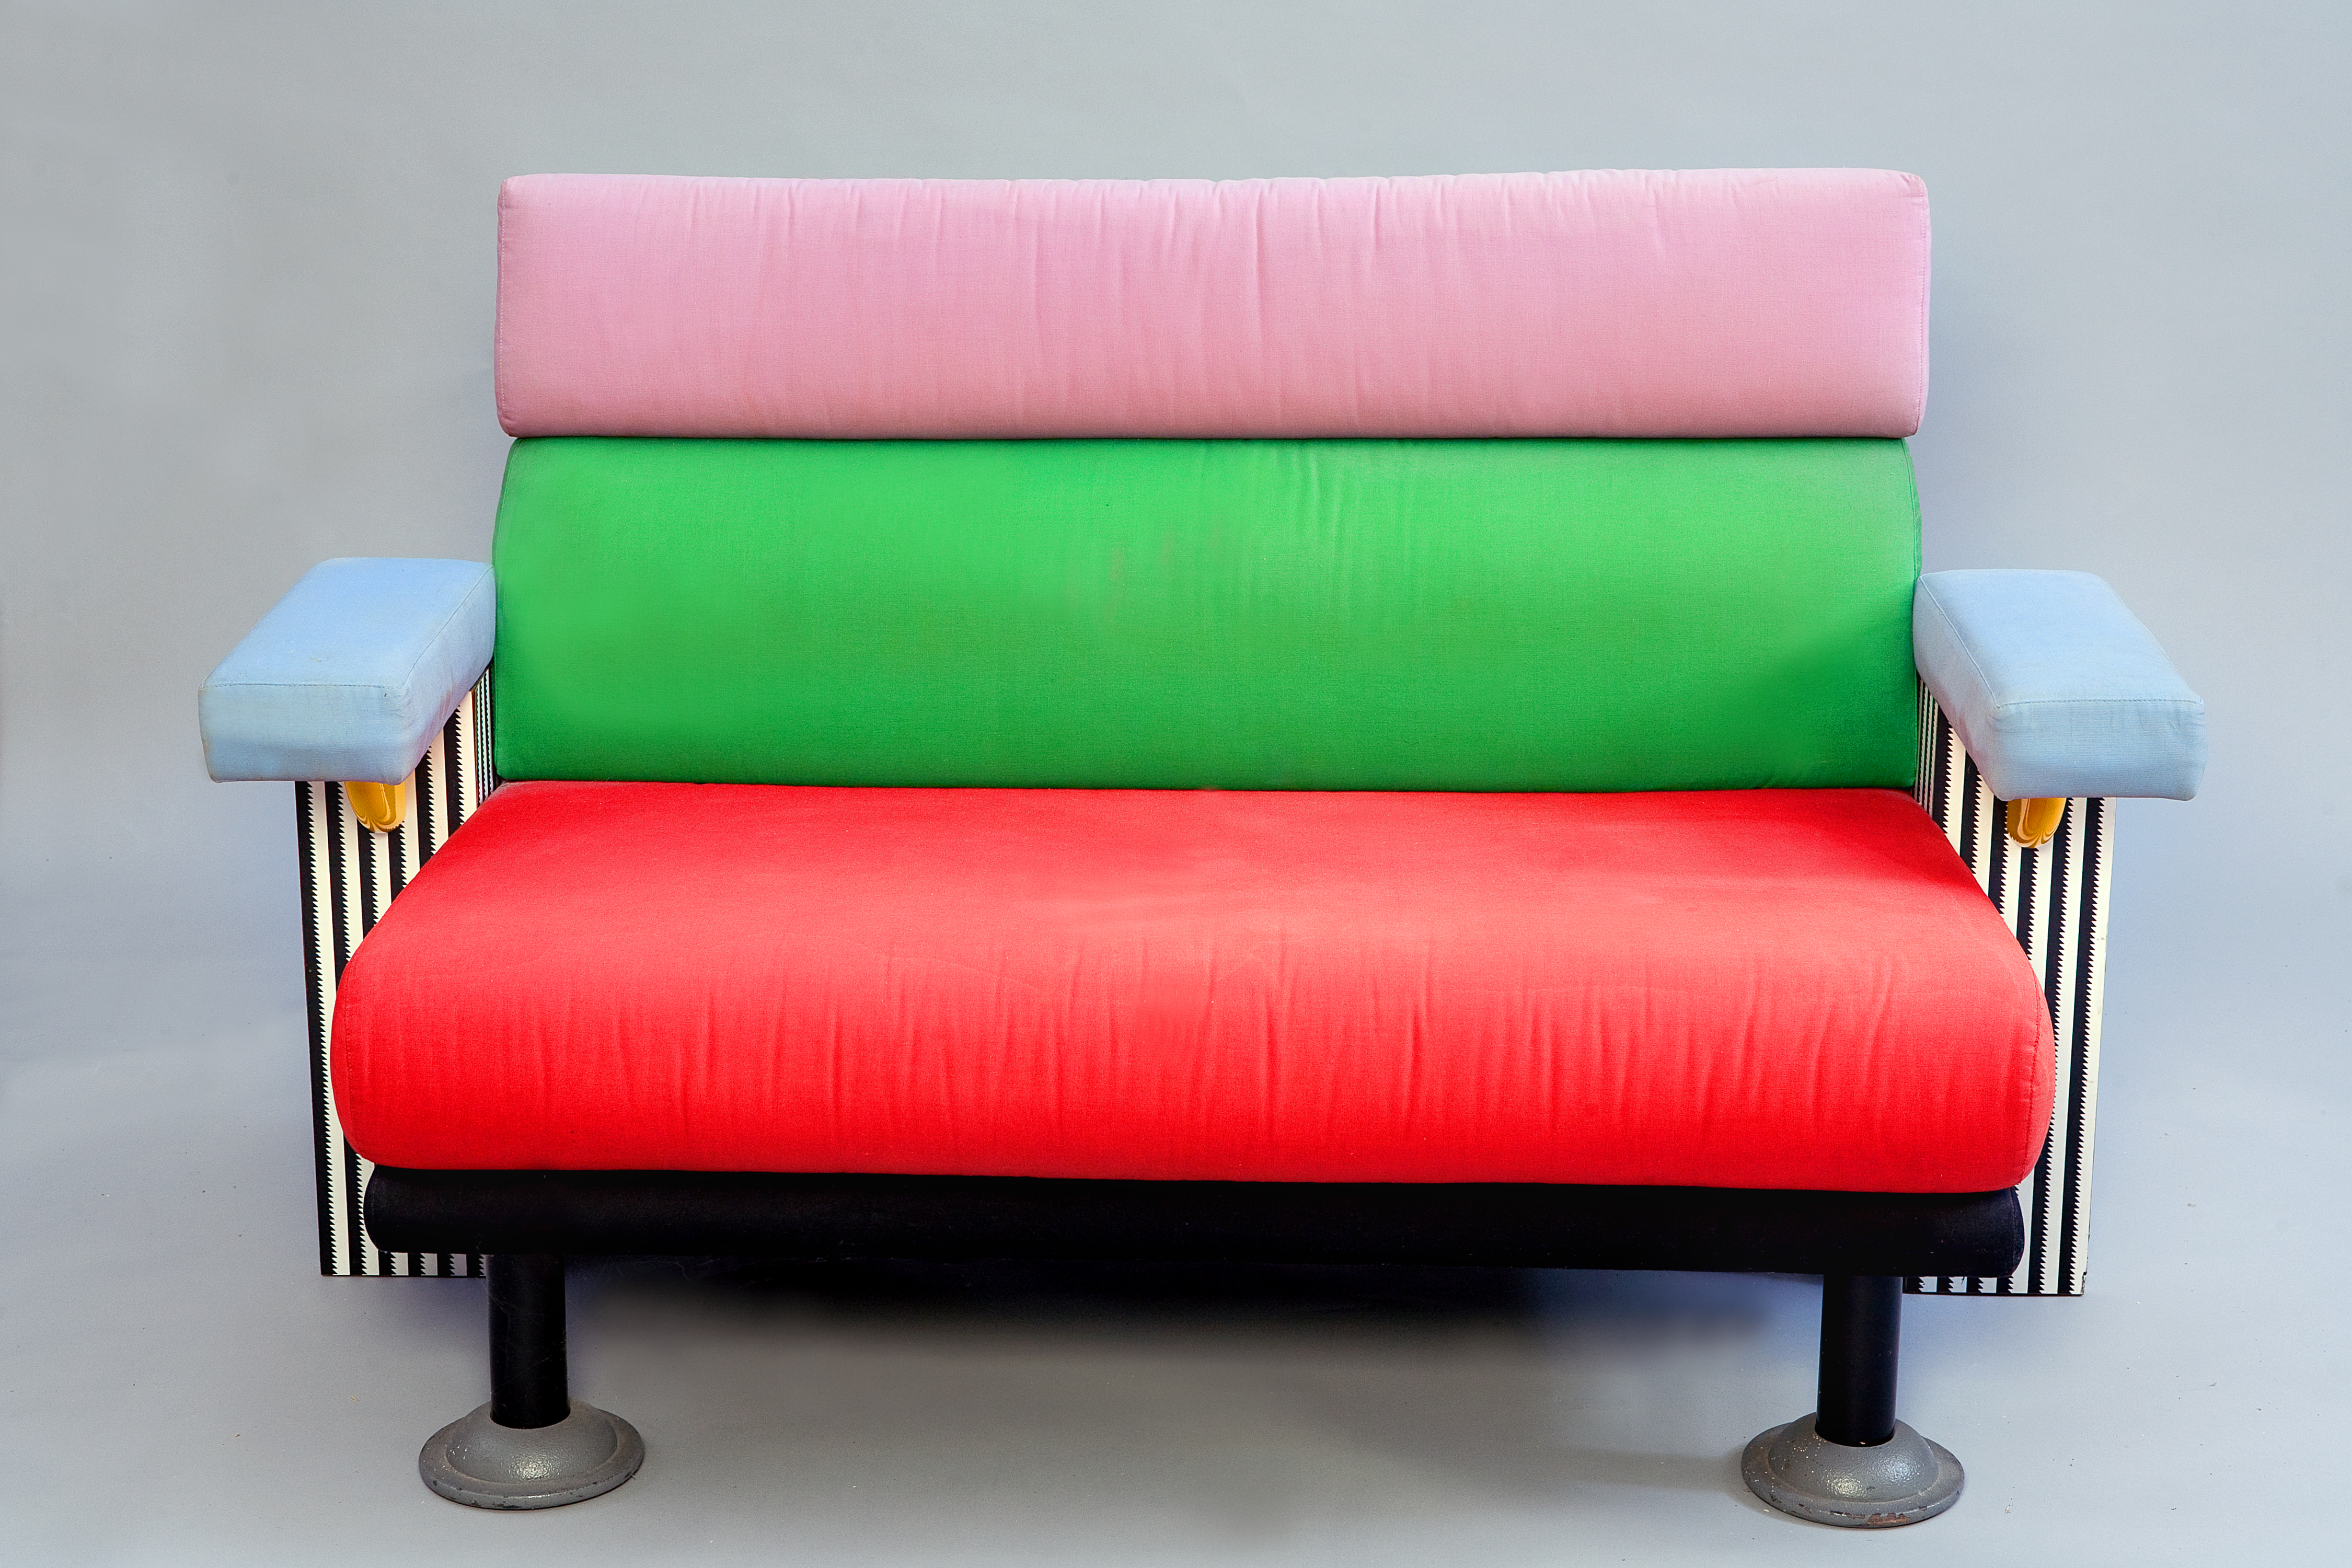 discuss what do you think of the memphis furniture is it fun or silly to use such bold colours and shapes on large objects group